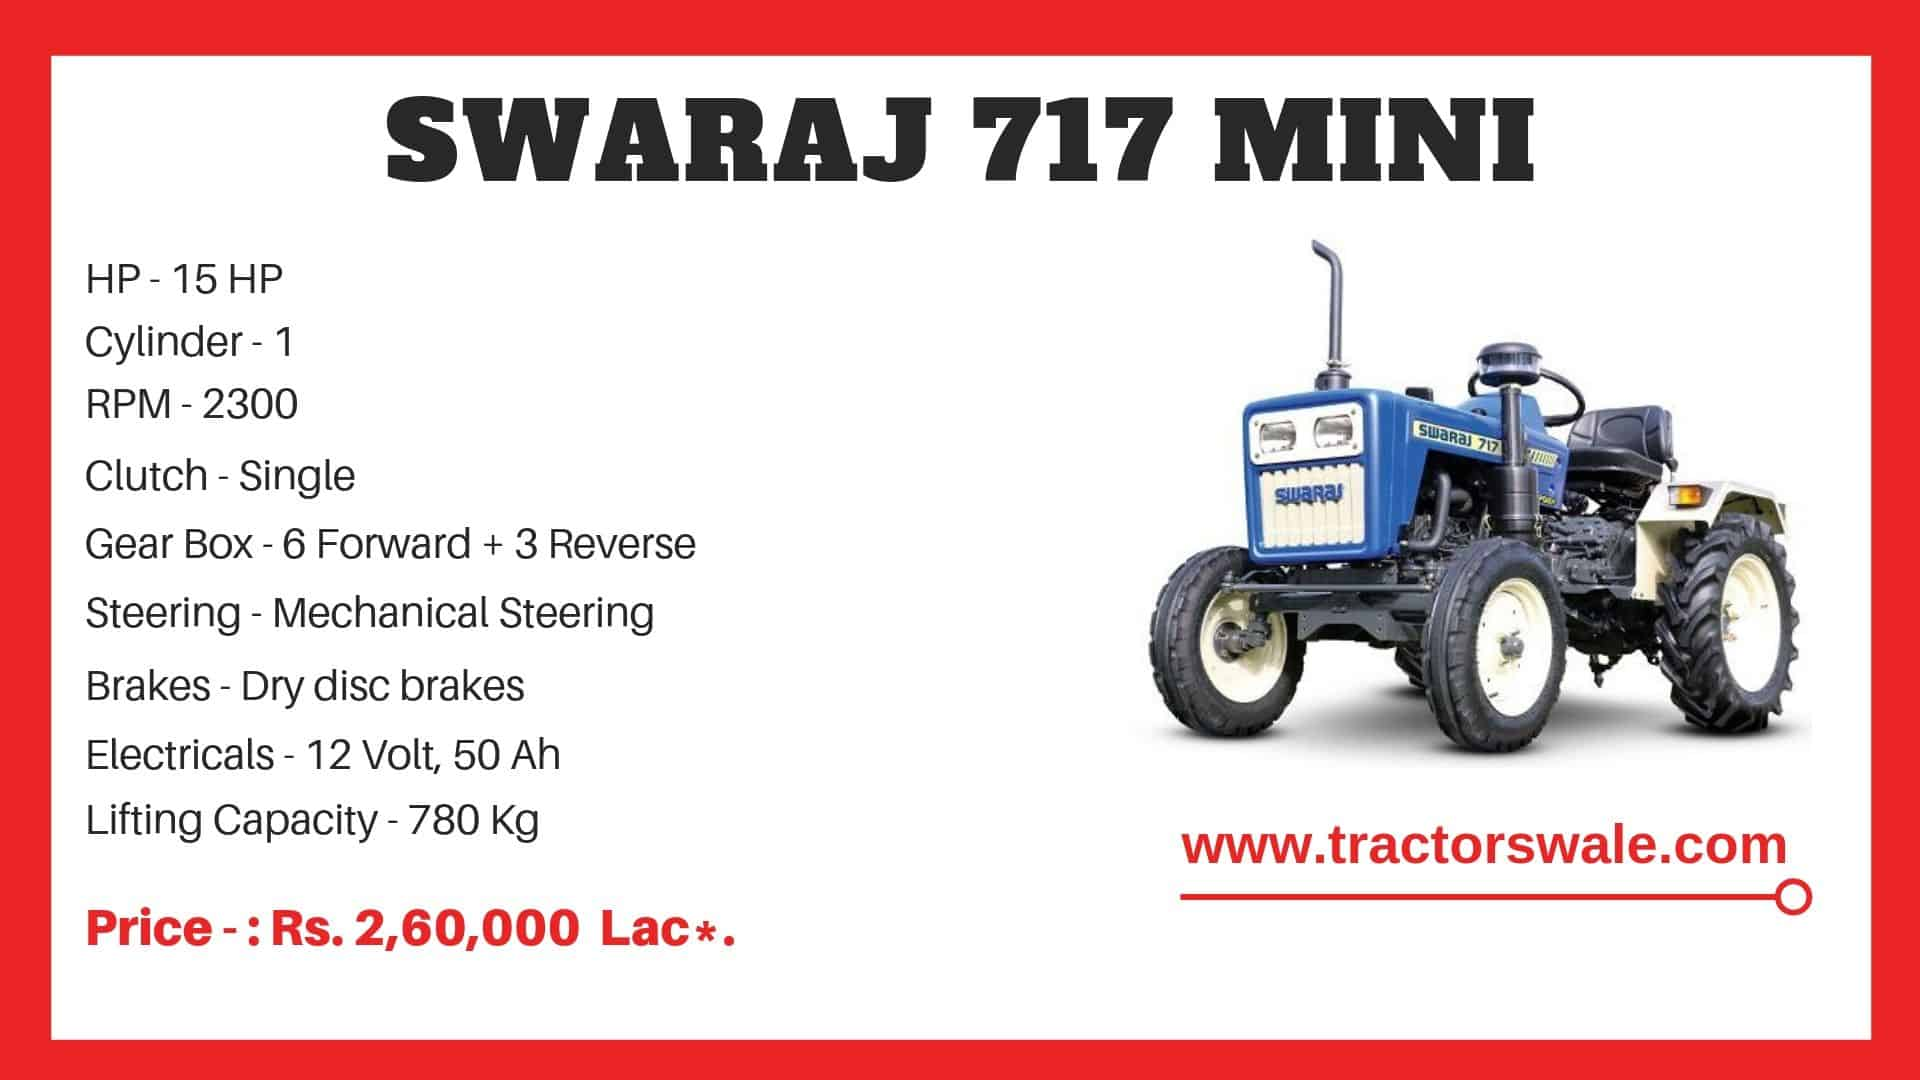 Specification of Swaraj 717 Tractor